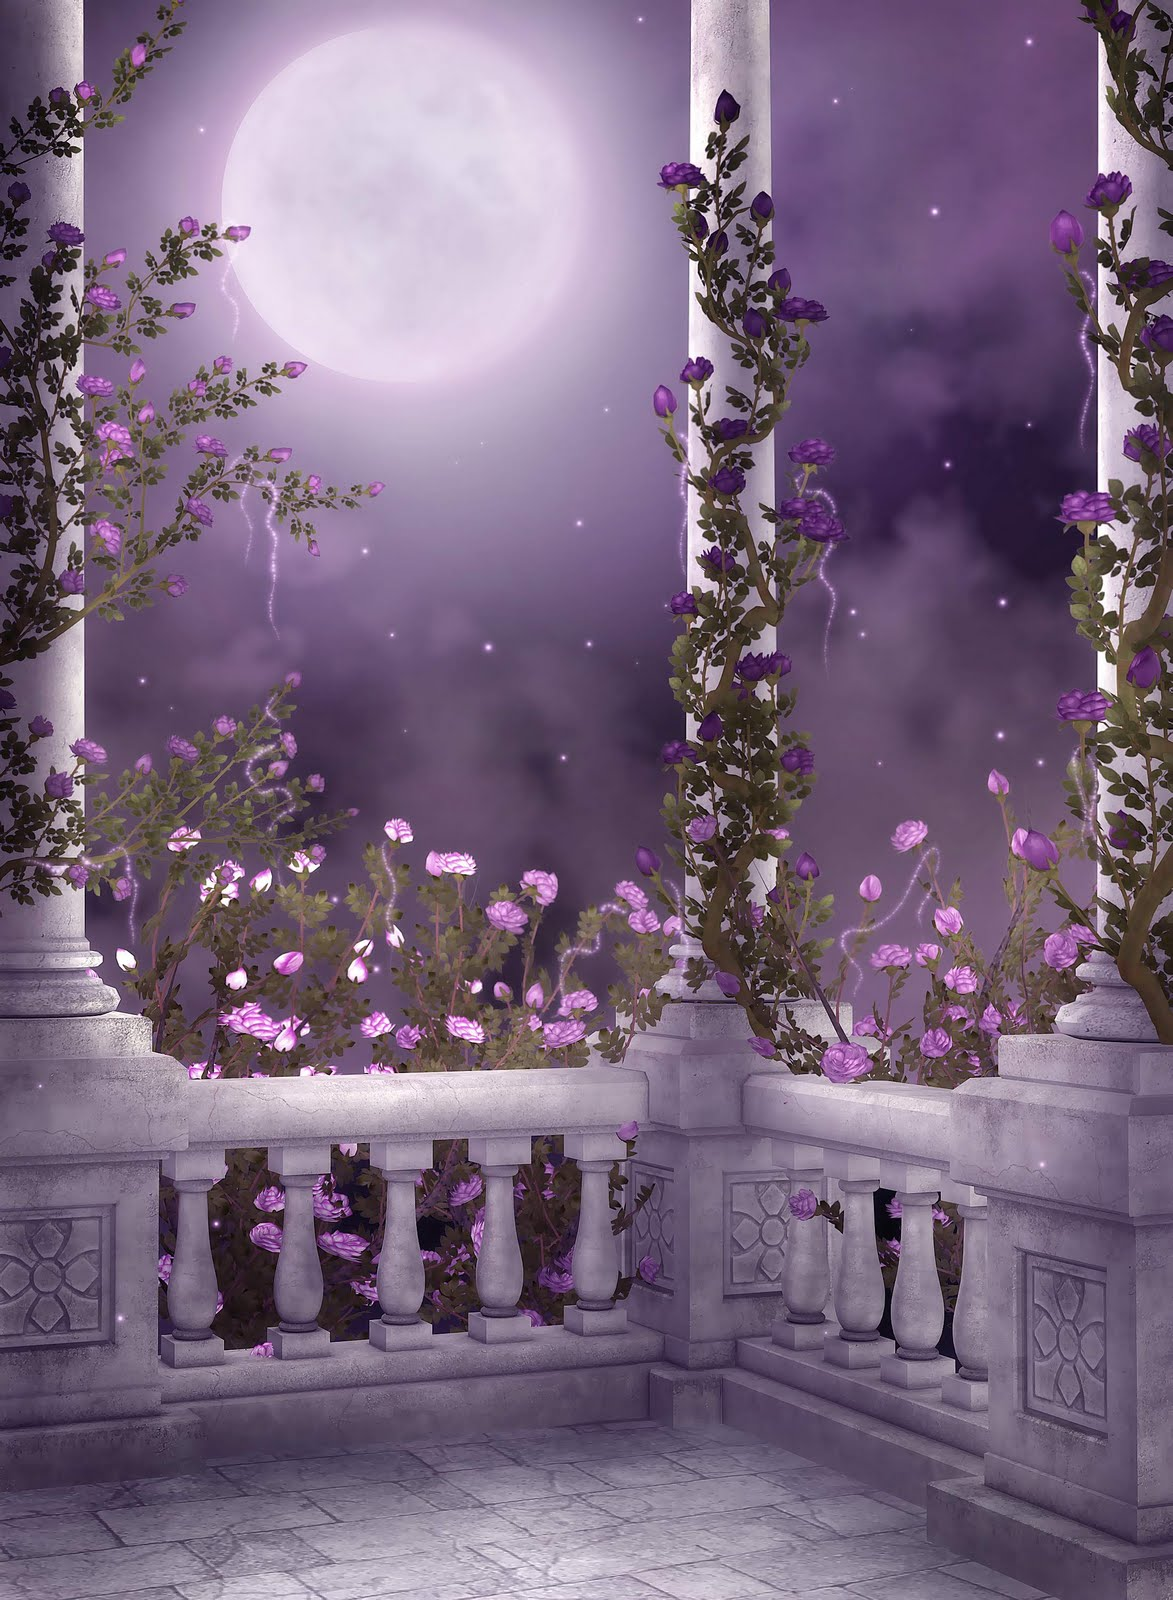 Animated Nature Wallpapers Free Download Beautiful Gothic Free Pc Wallpapers